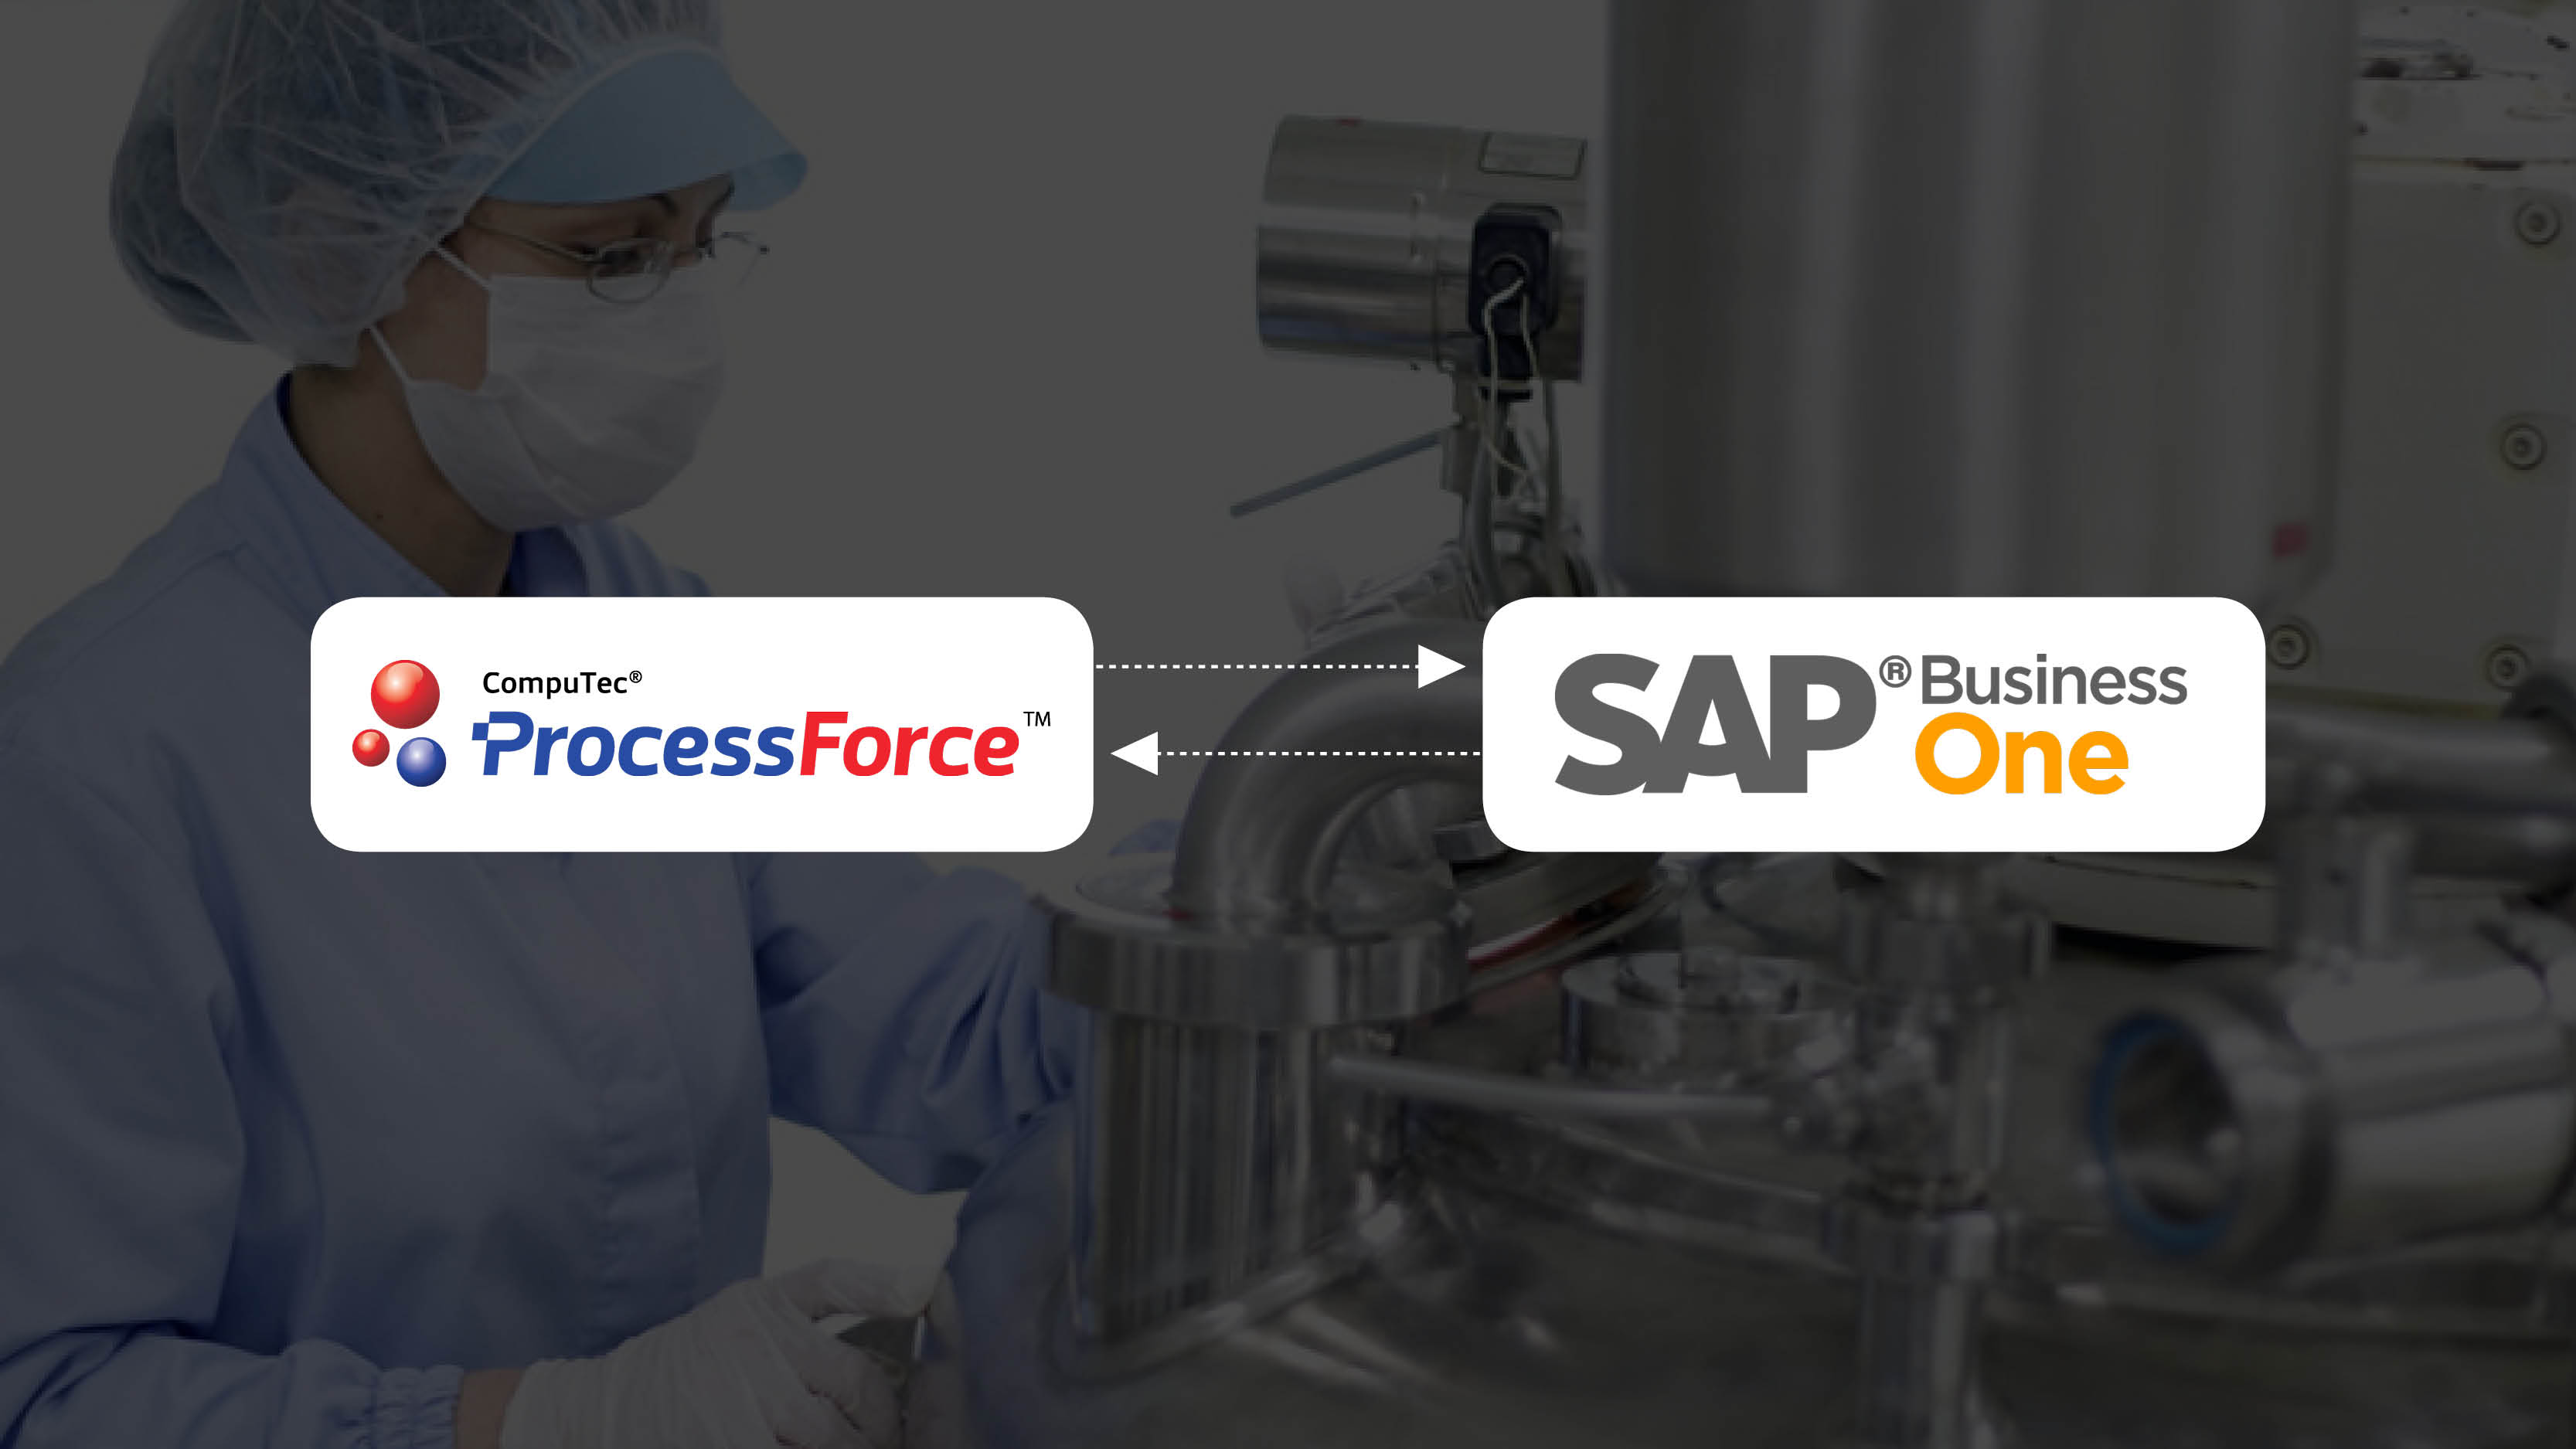 SAP Business One + ProcessForce ERP for process manufacturing companies